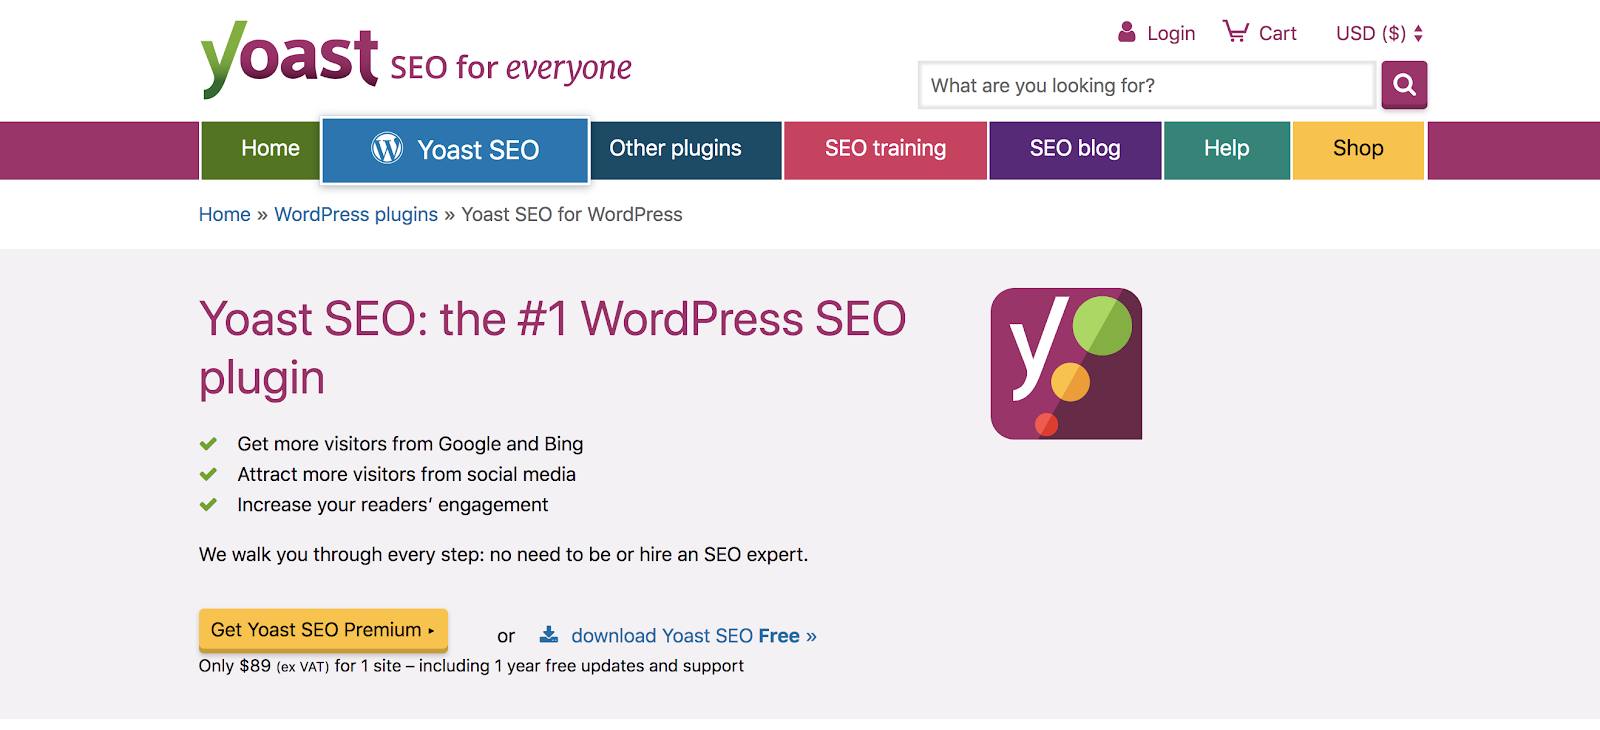 Yoast SEO WordPress Plugin for Bloggers (Homepage Screenshot)